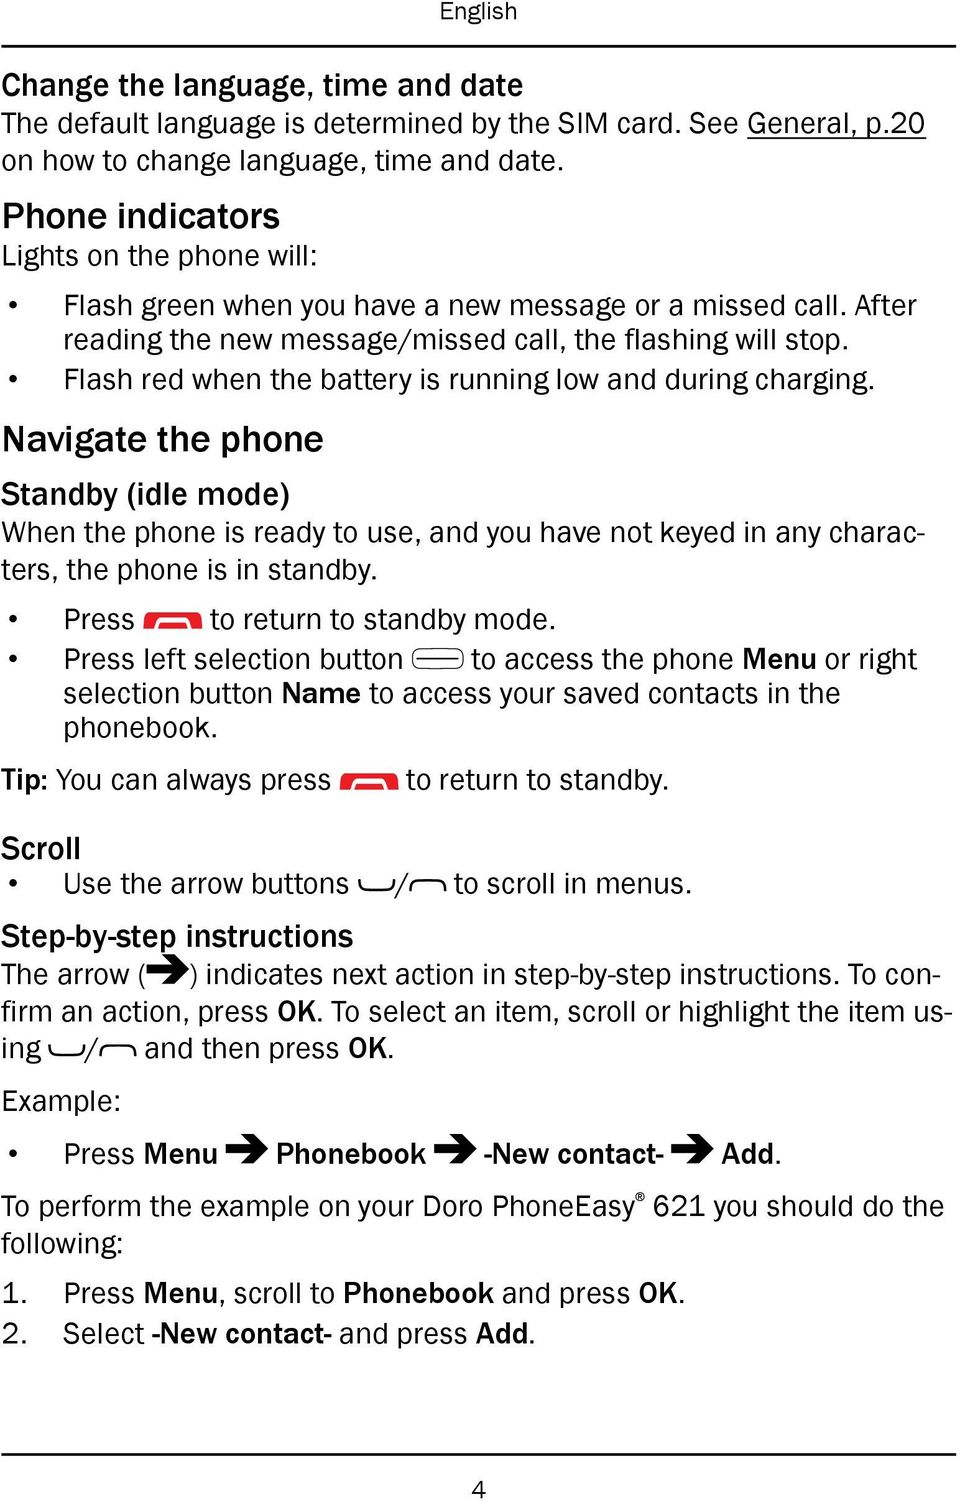 Flash red when the battery is running low and during charging. Navigate the phone Standby (idle mode) When the phone is ready to use, and you have not keyed in any characters, the phone is in standby.